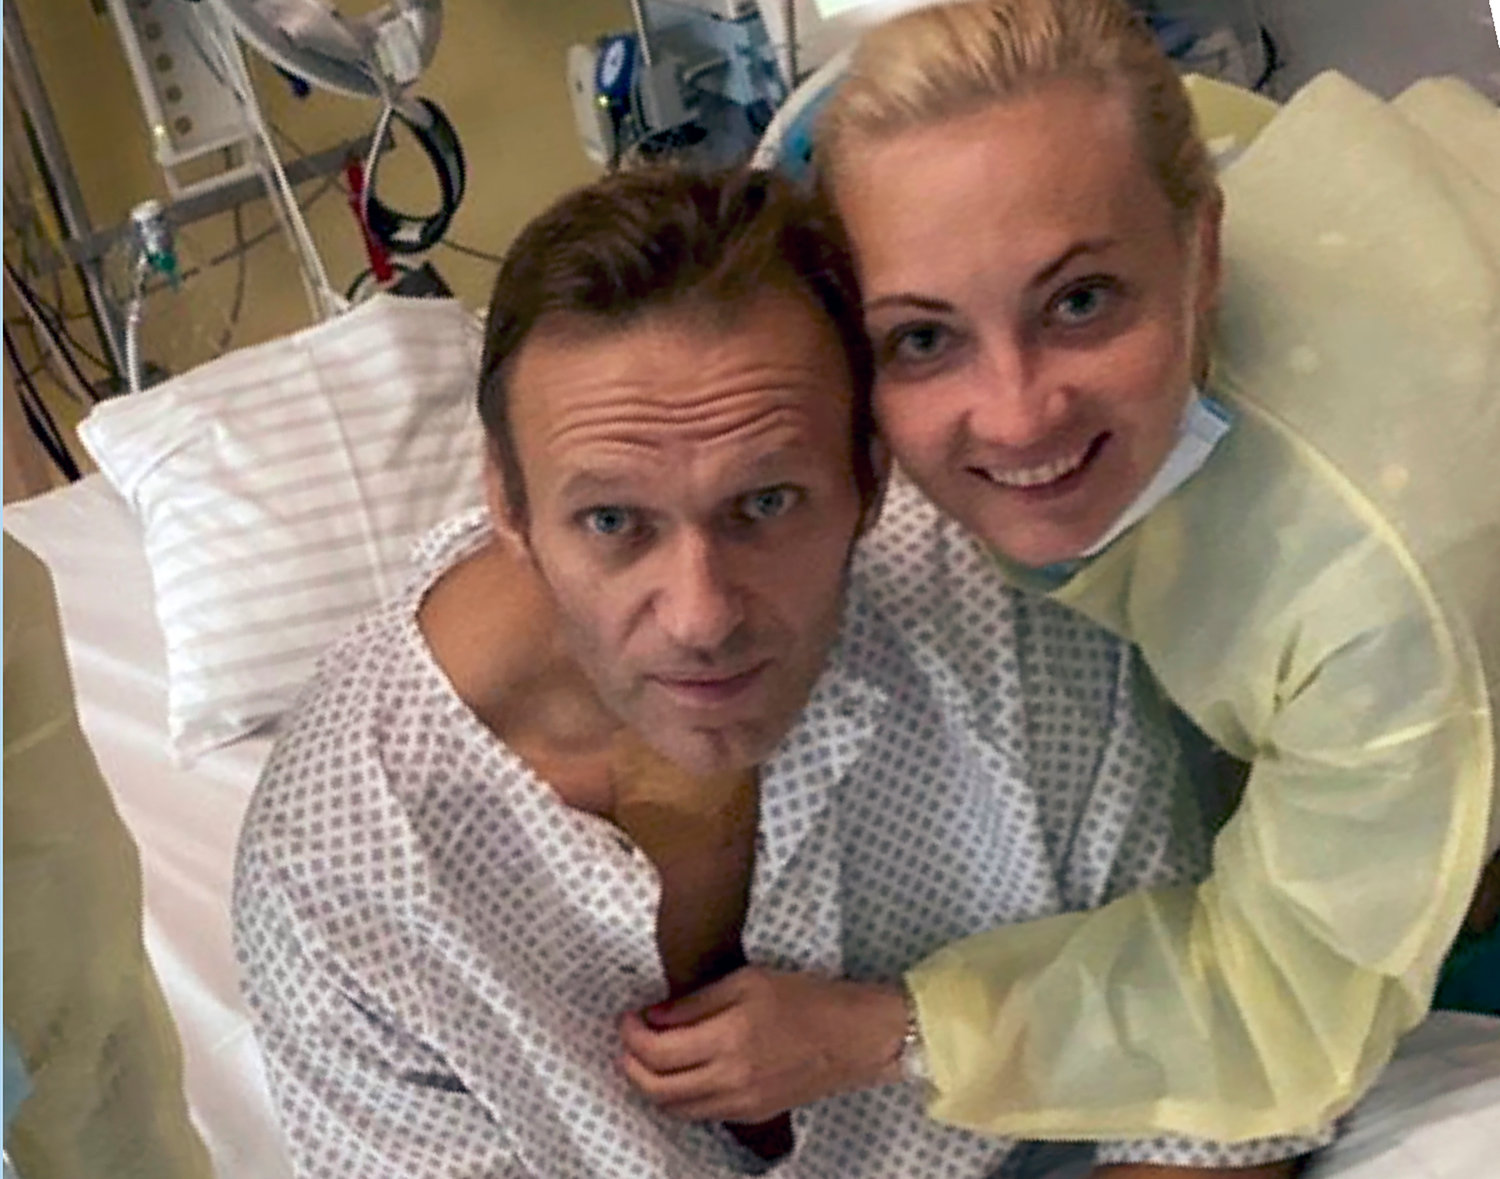 OPPOSITION LEADER — This handout photo published by Russian opposition leader Alexei Navalny on his Instagram account shows himself and his wife Yulia, posing for a photo in a hospital in Berlin, Germany.